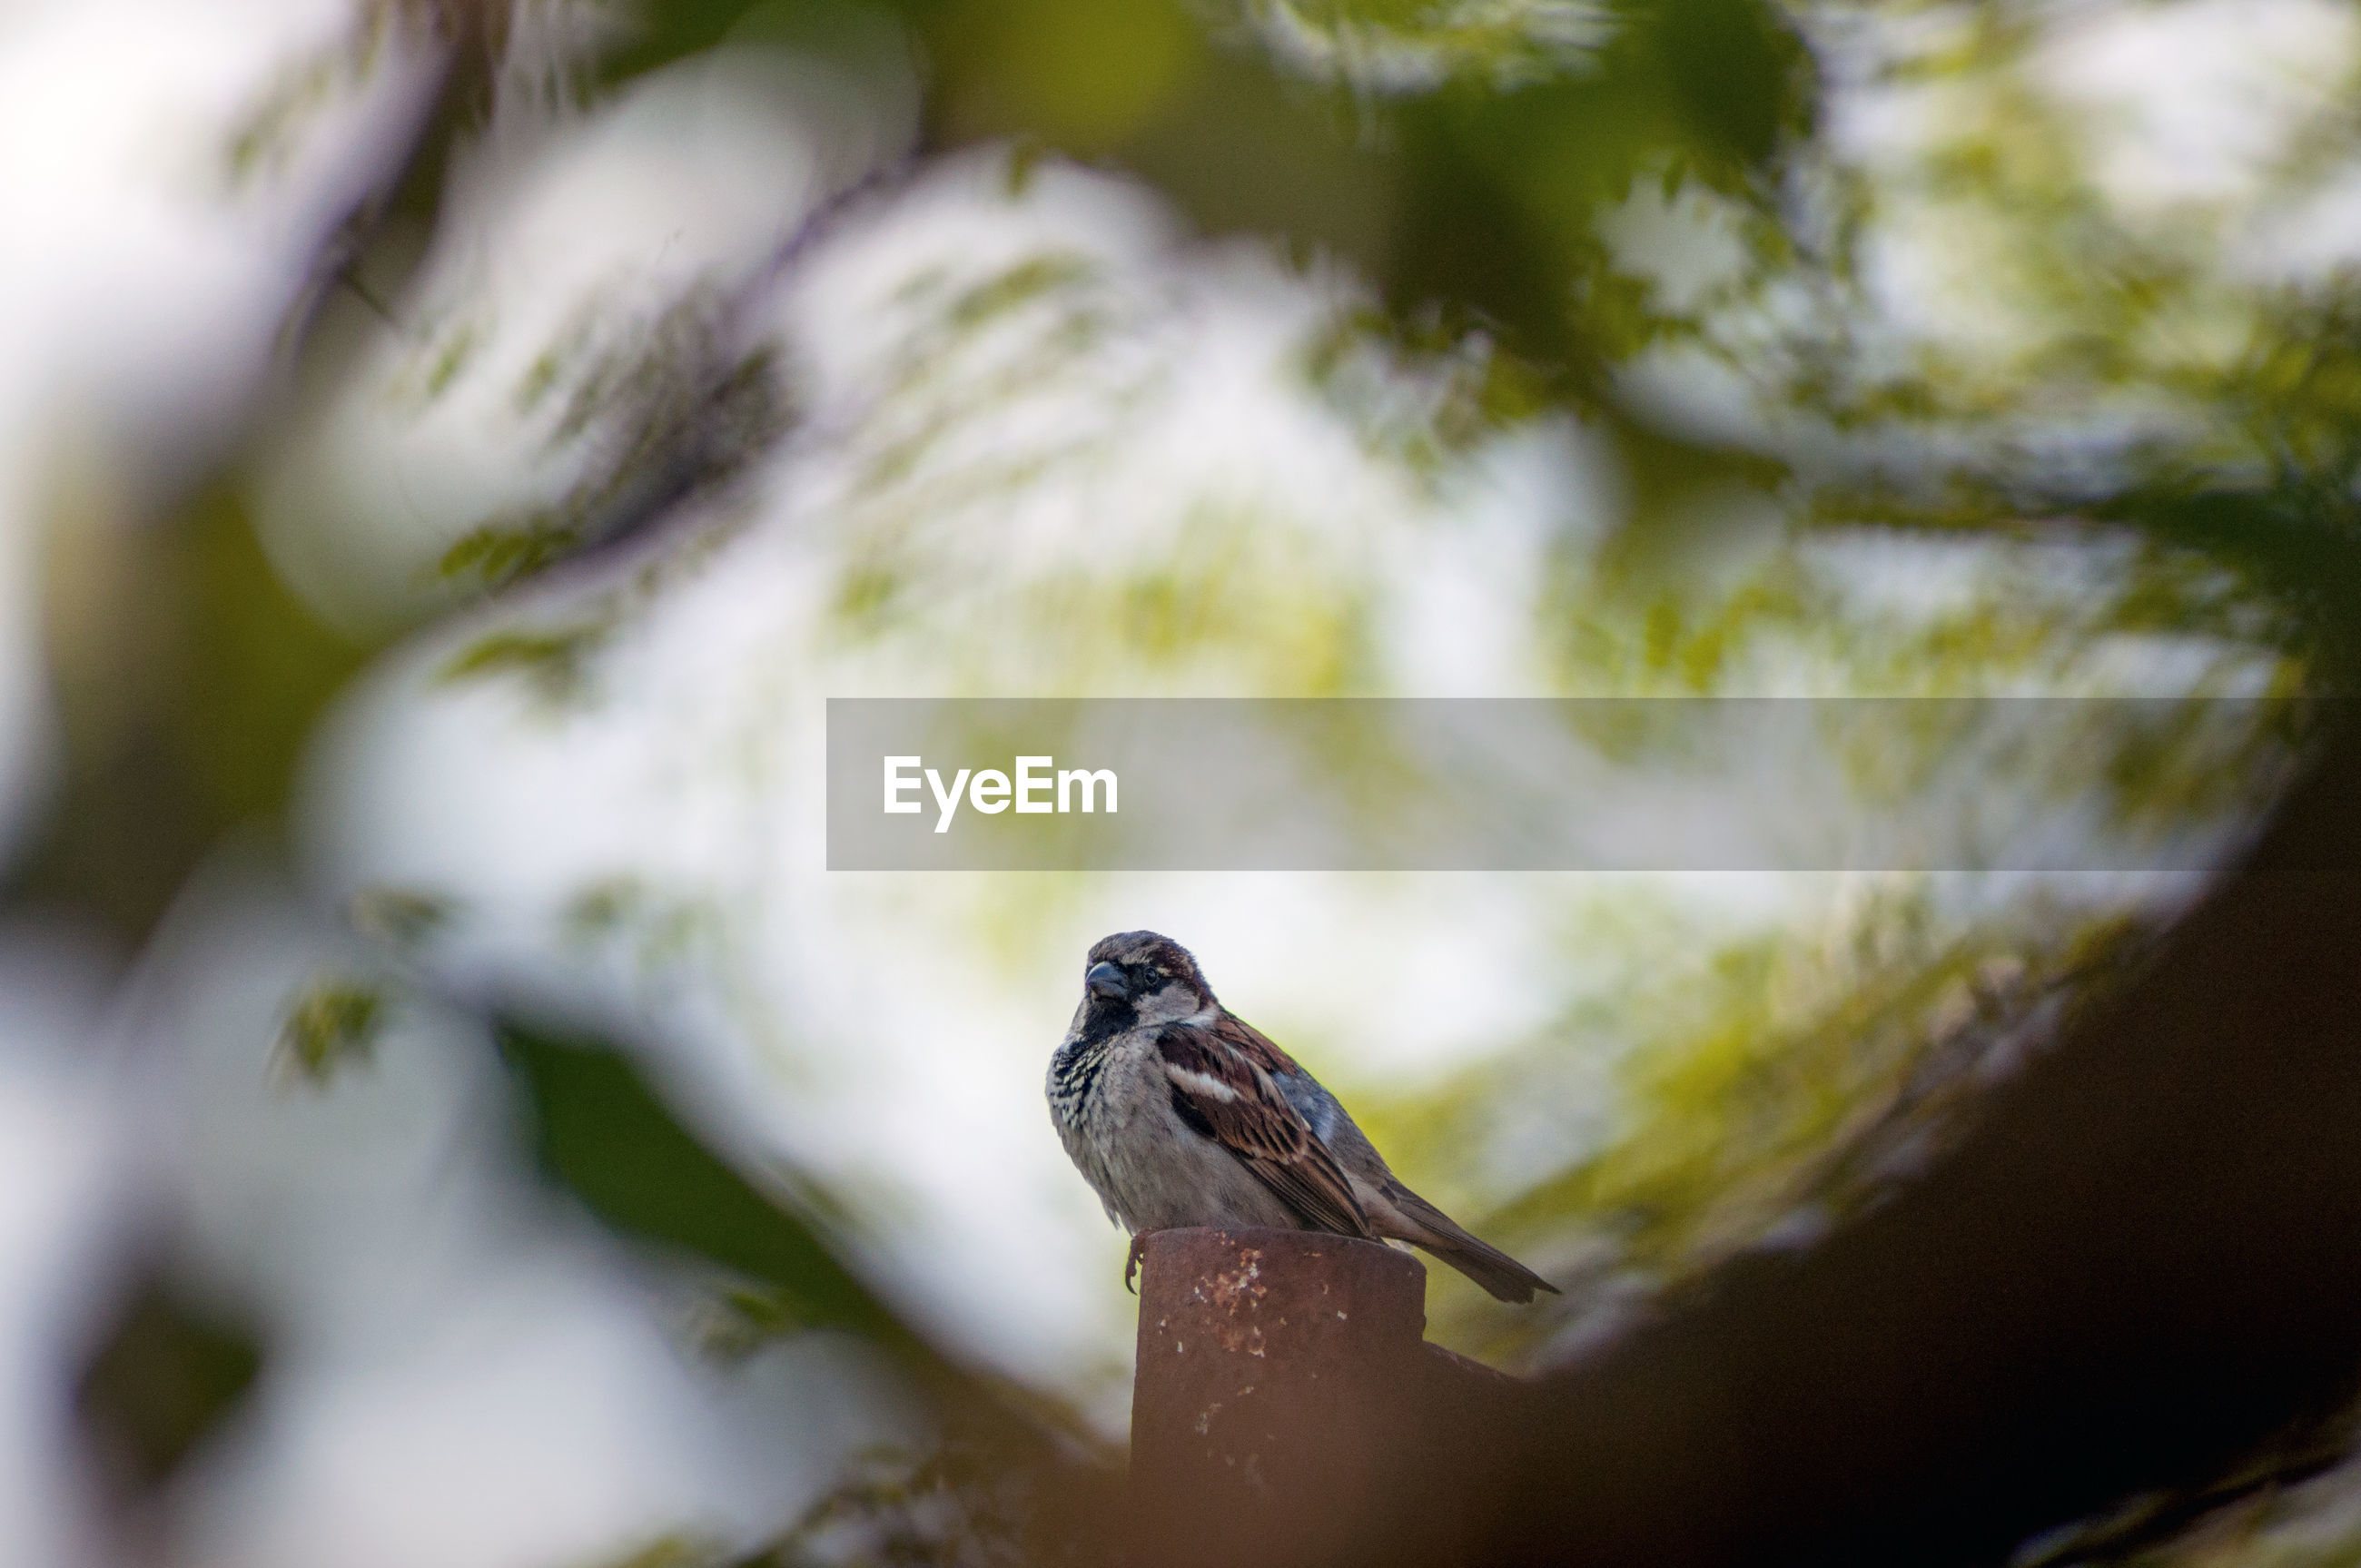 CLOSE-UP OF A BIRD PERCHING ON A BRANCH